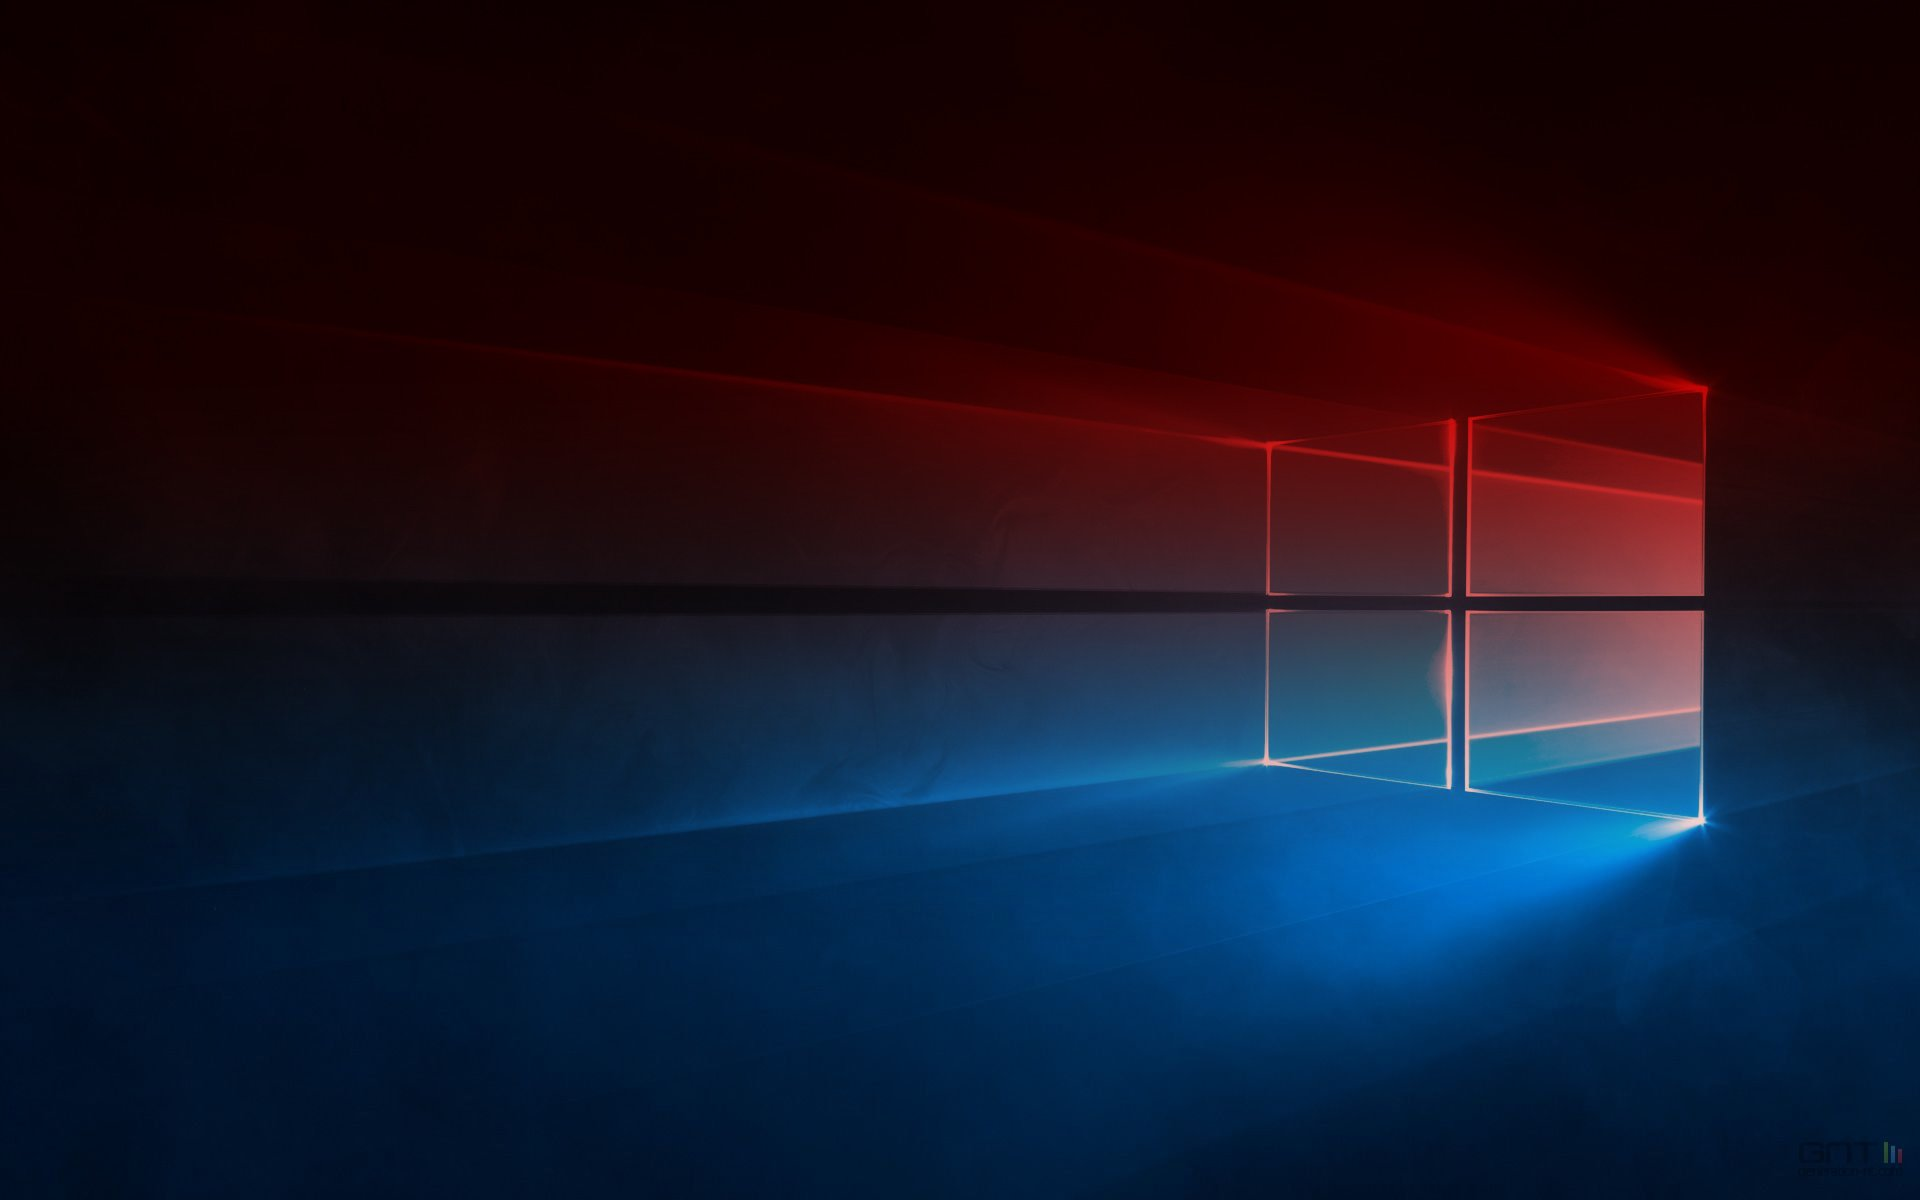 avancement de la future mise jour de Windows 10 Redstone 1920x1200